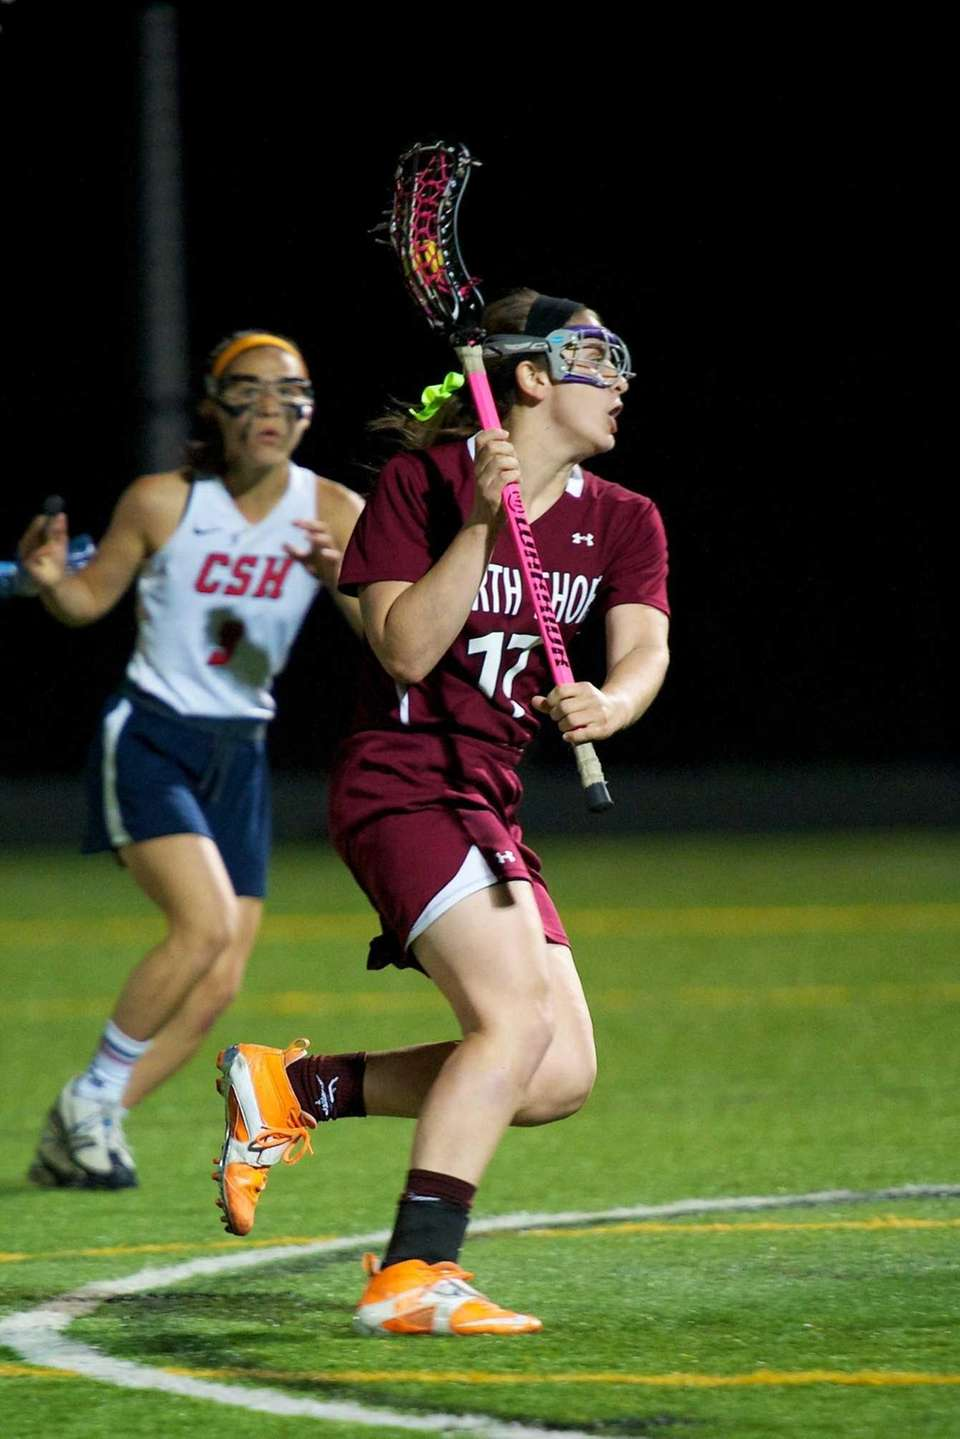 North Shore midfielder Carly Comitino scores a goal